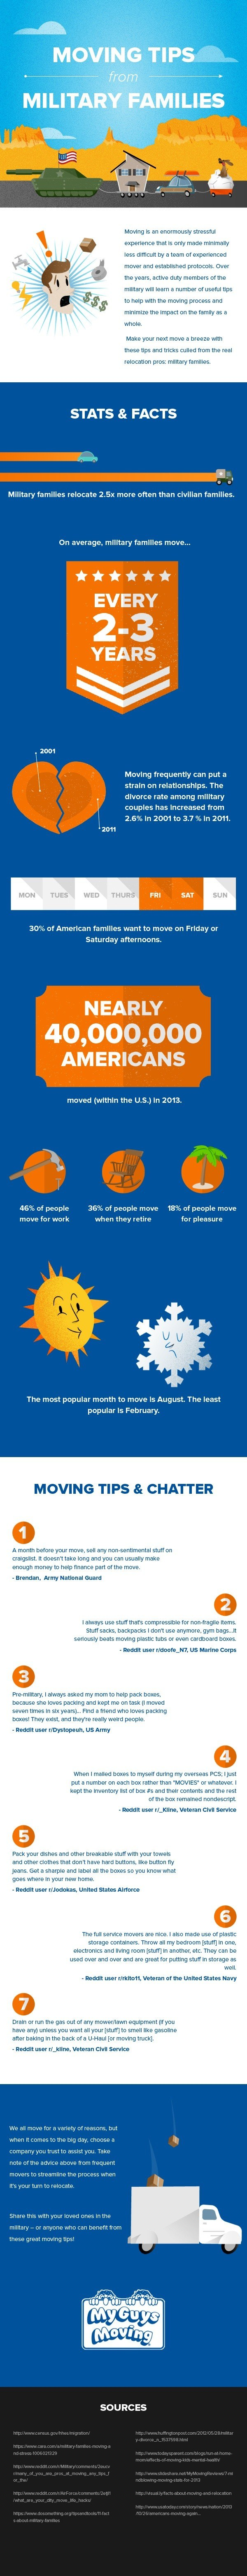 http://myguysmoving.com/moving-advice/images/mgm-infographic.jpg